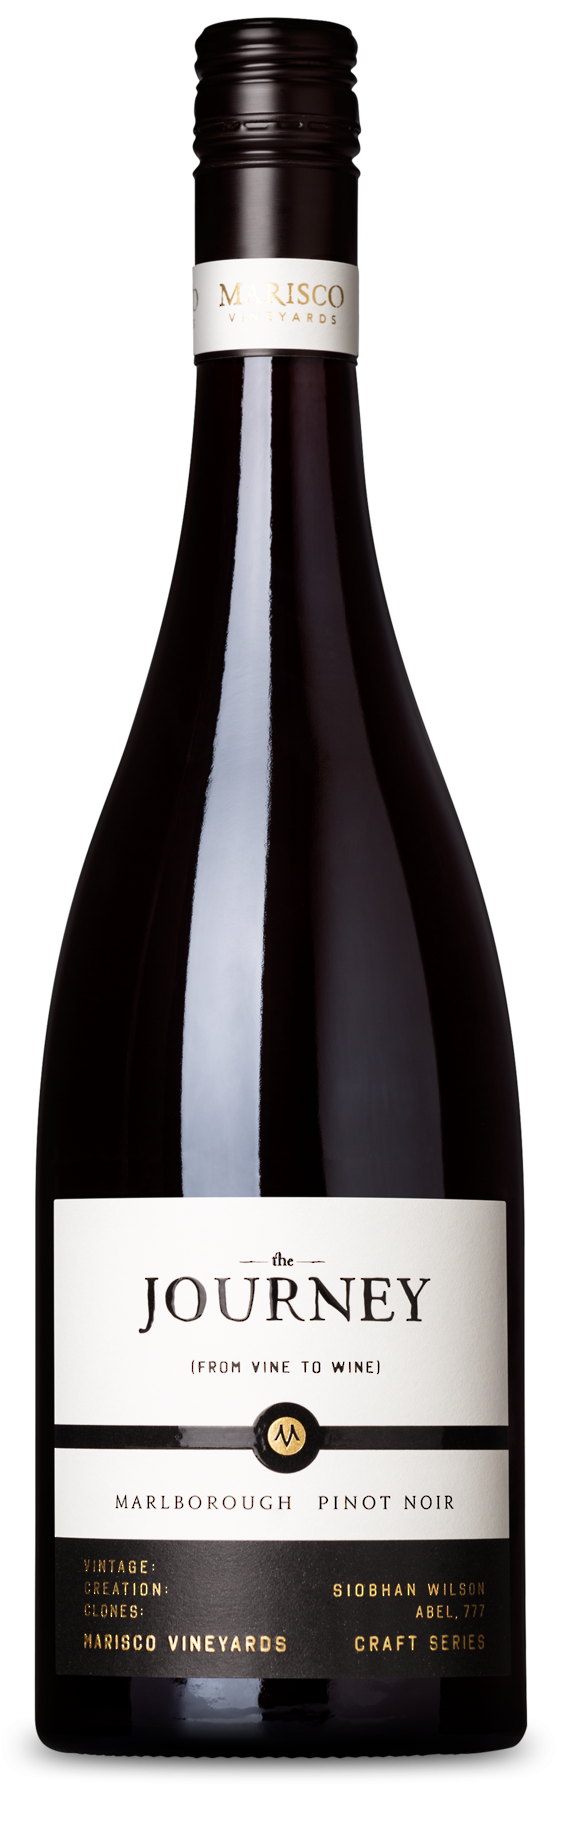 The Journey Pinot Noir 2015 image 0